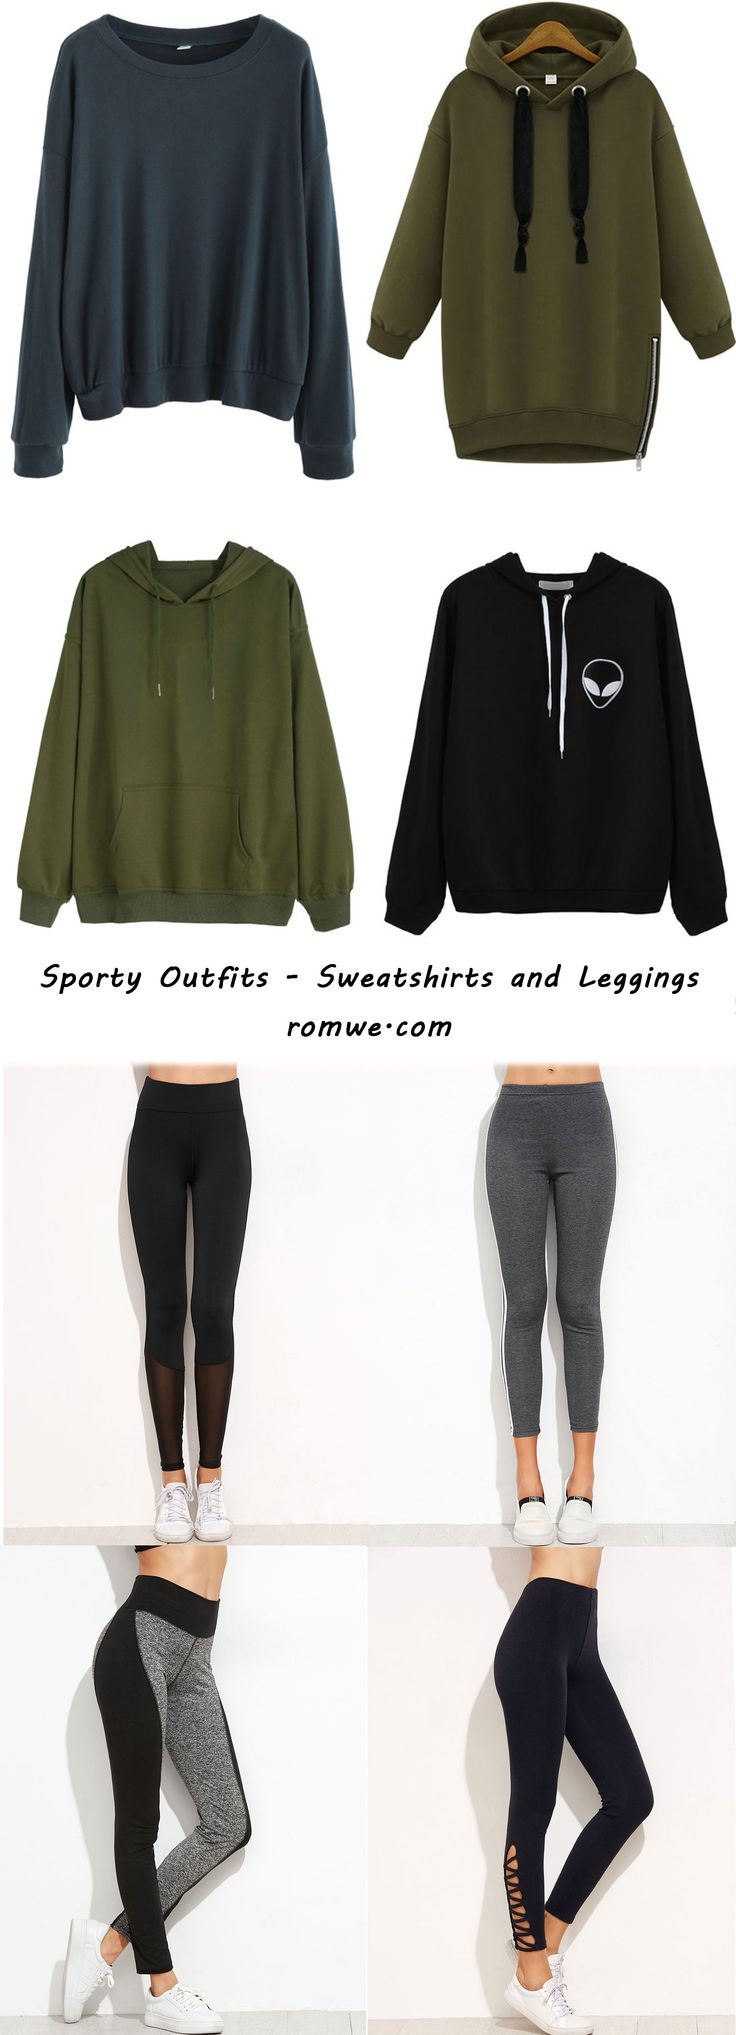 Black Friday Gifts - 60% off oders us$59+,  65% off oders us$109+, 70% off oders us$149+ Sporty Outfits -  Leggings and Plain Sweatshirts from romwe.com